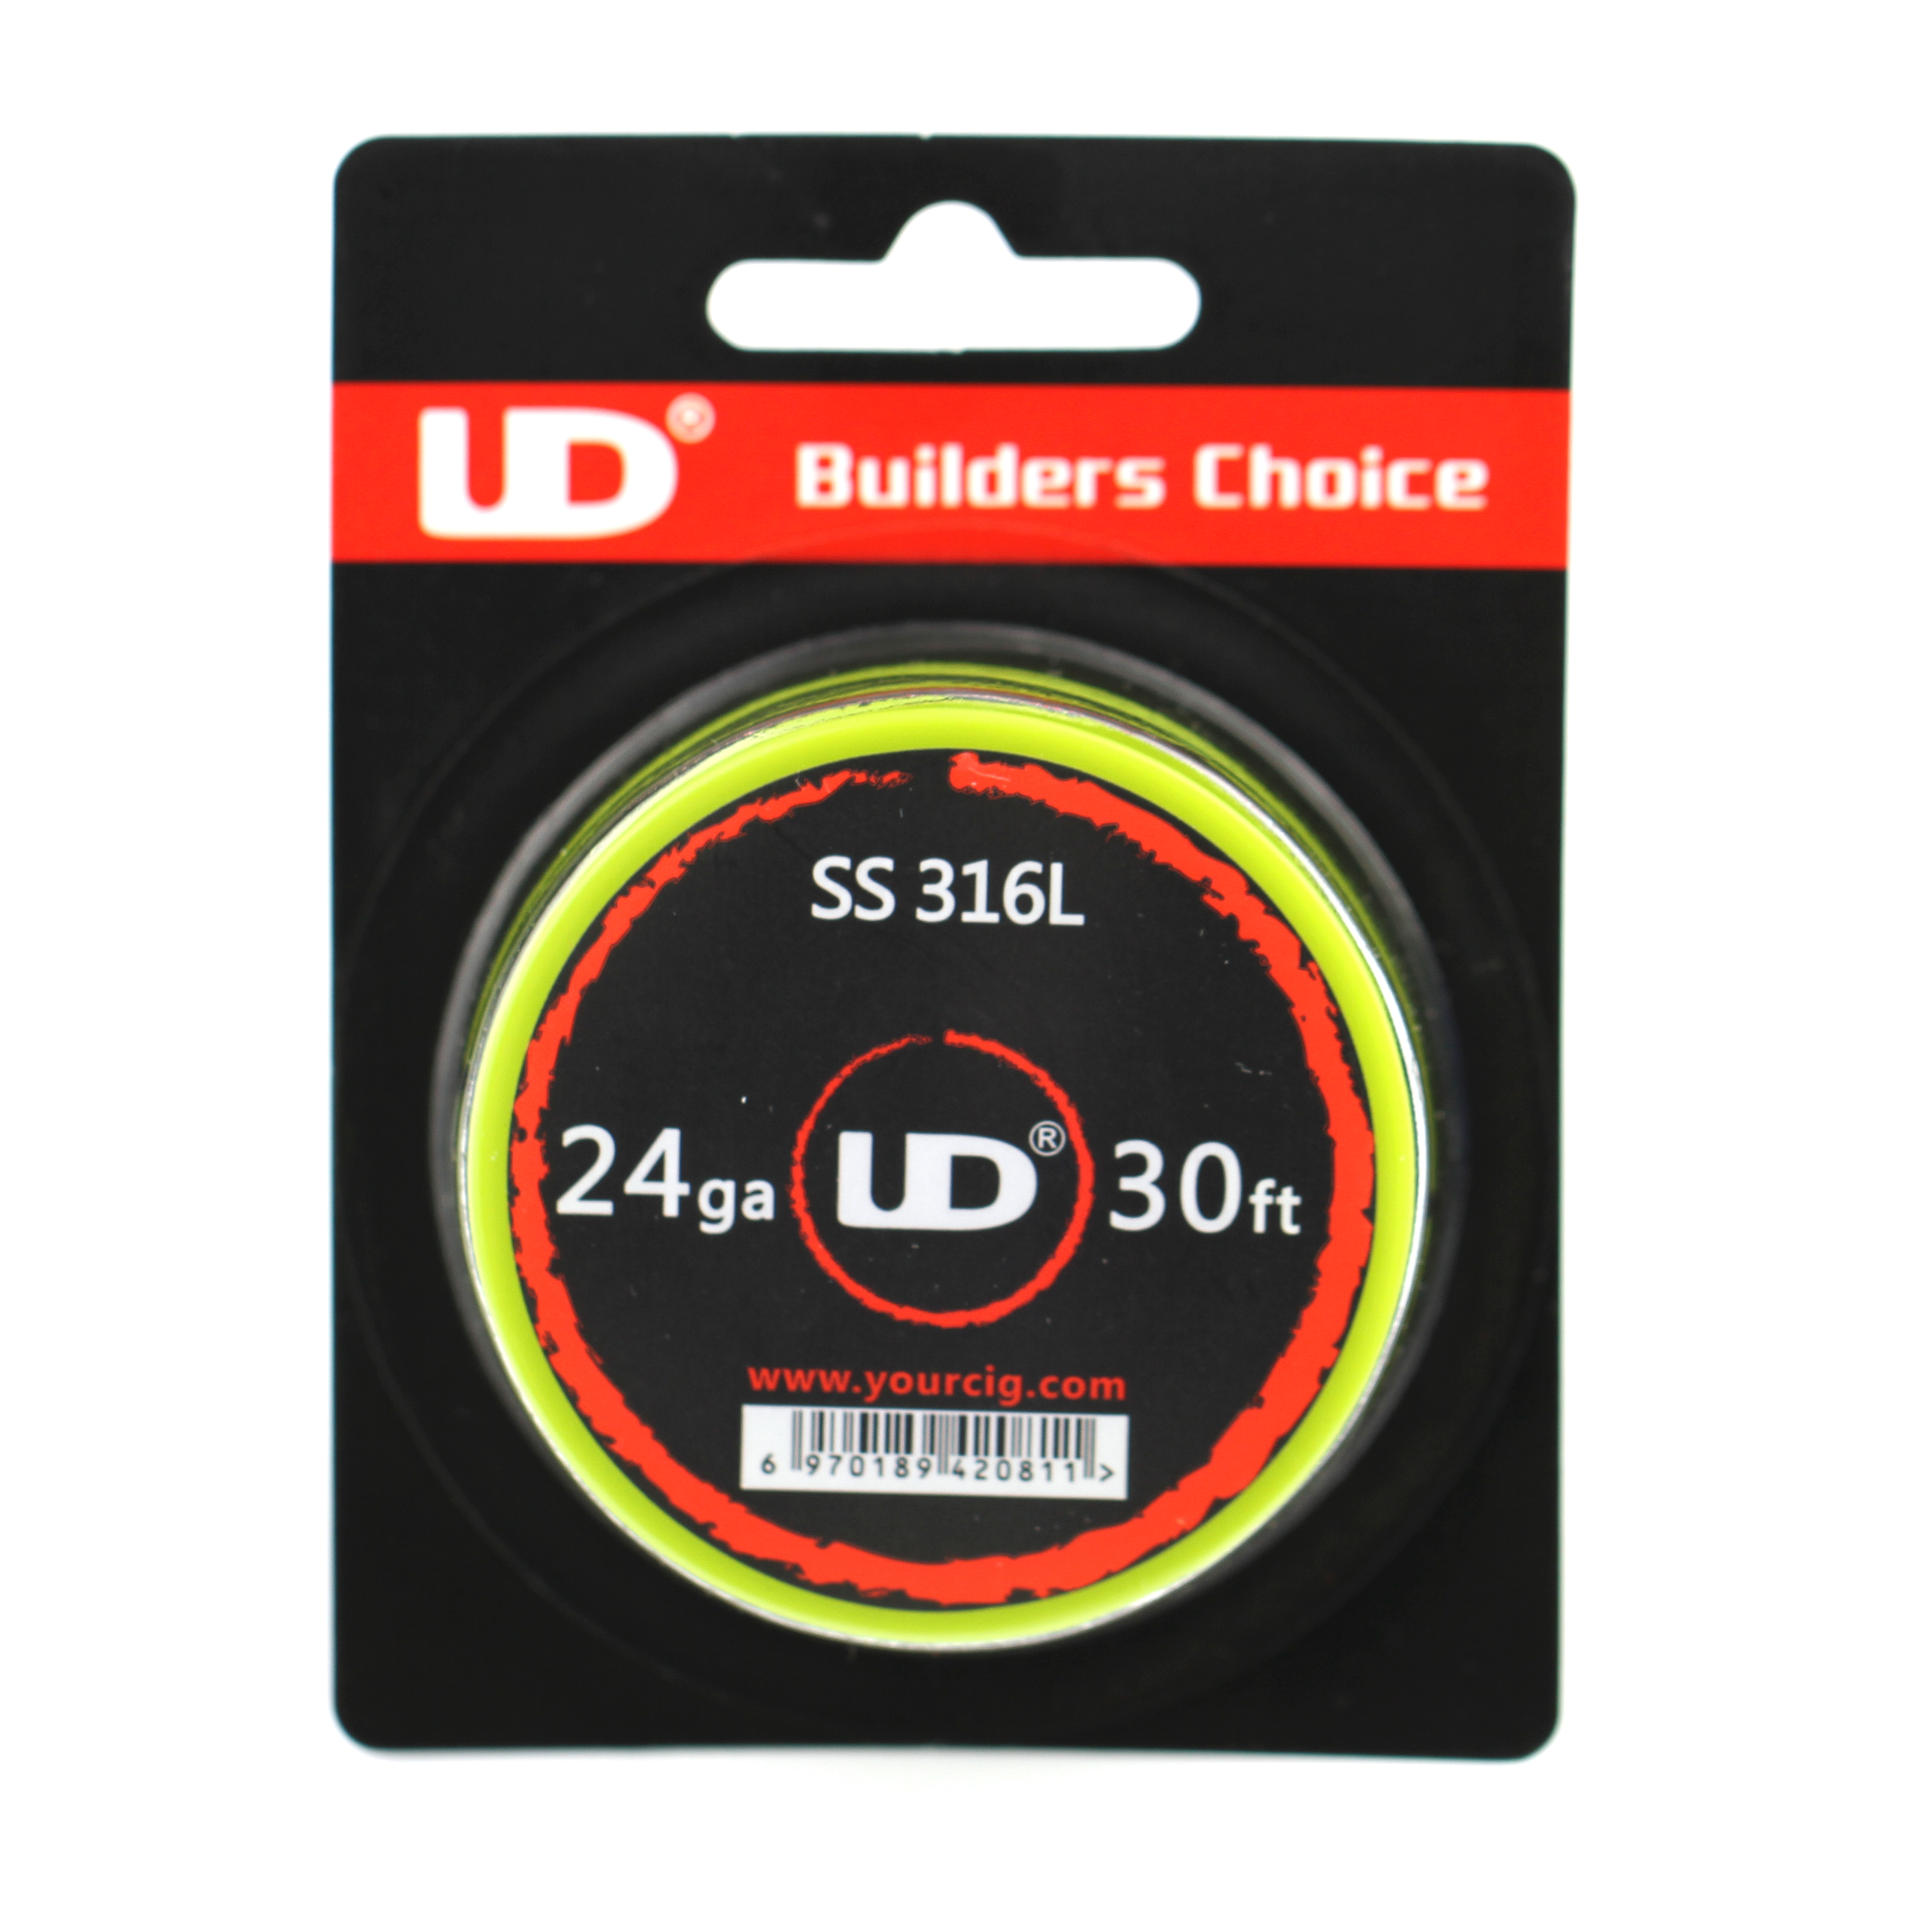 Electronic Cigarette Stainless Steel SS316L Heating Wire 30FT 24 AWG Gauge 24AWG